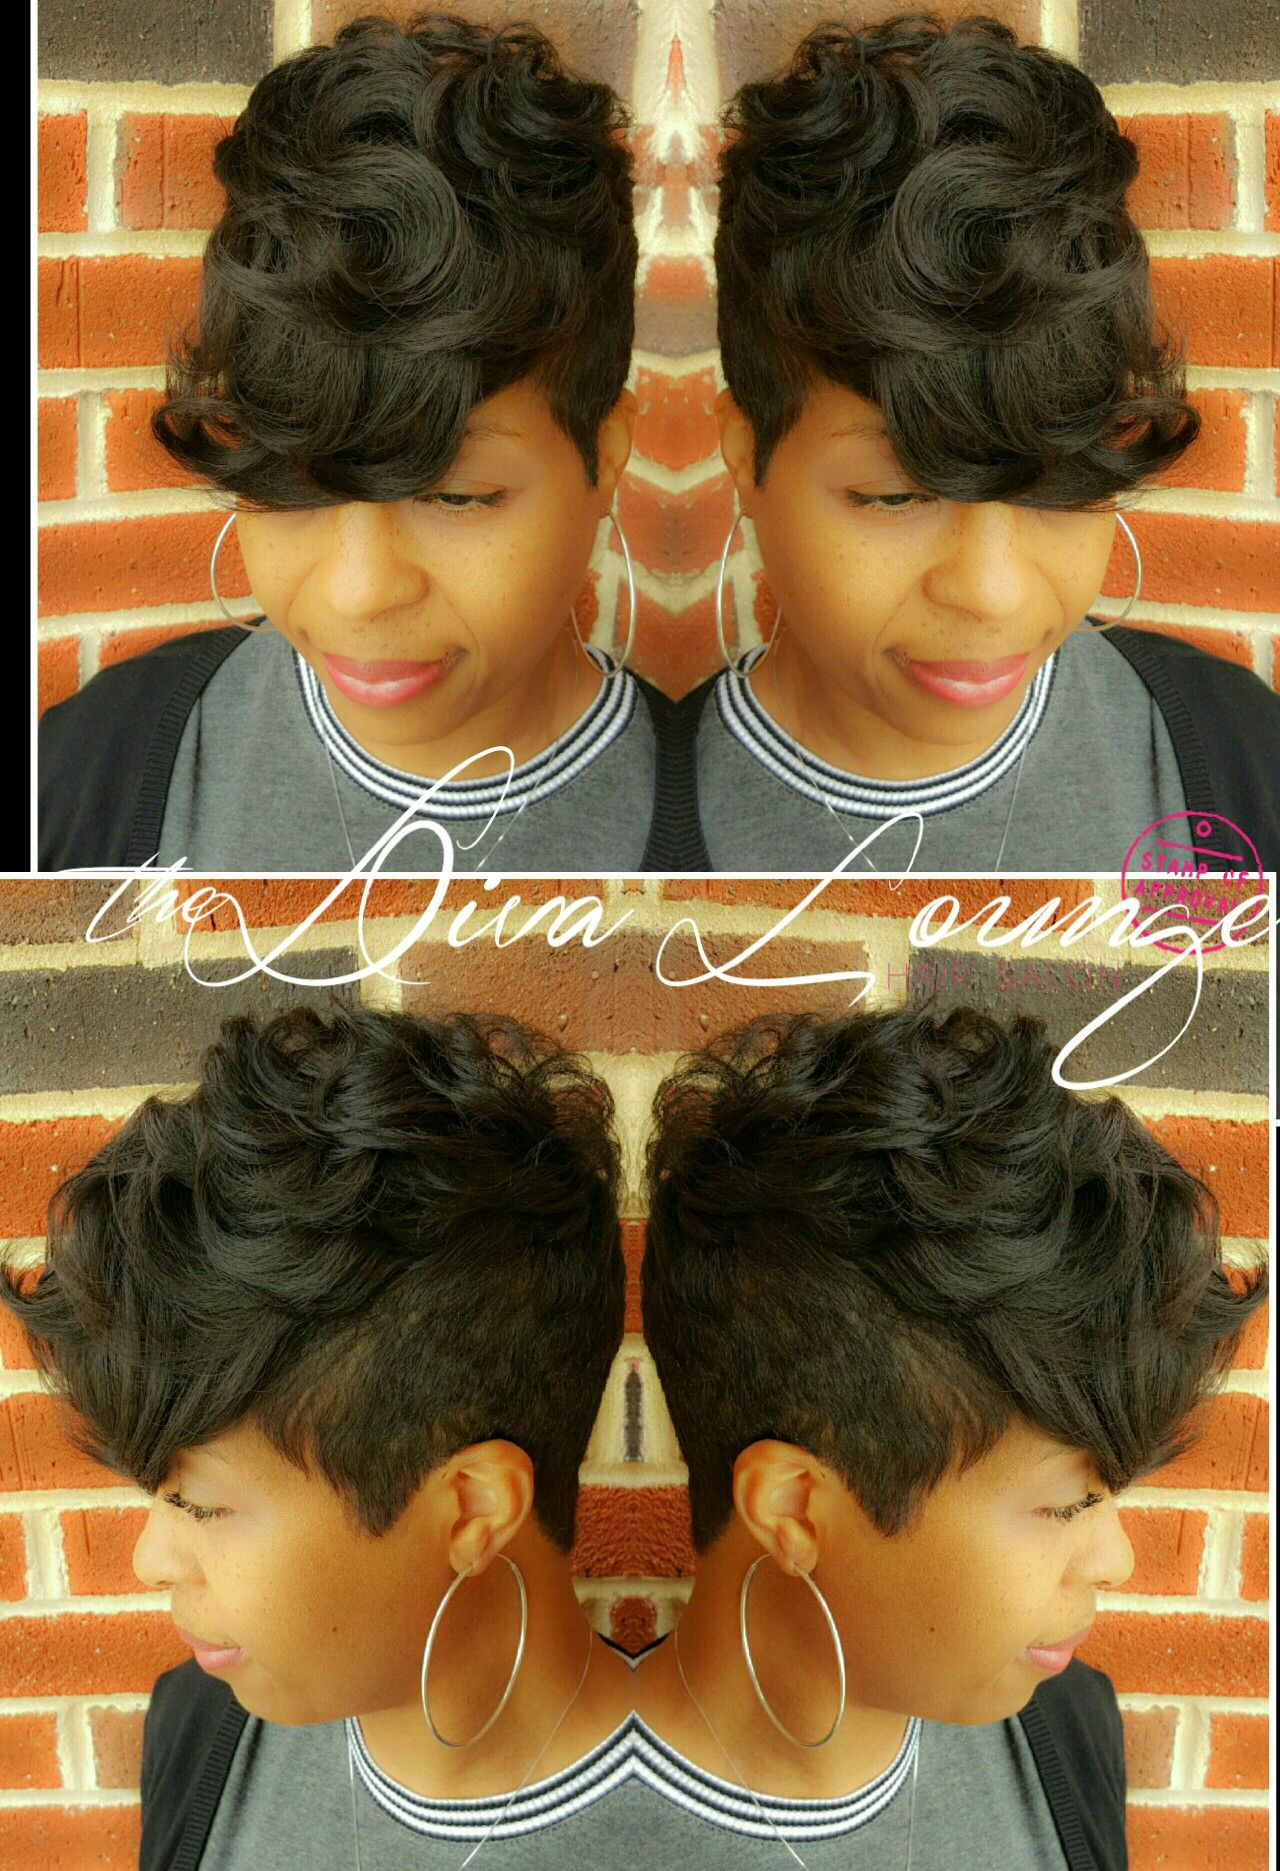 The diva lounge hair salon montgomery al larnetta moncrief stylist